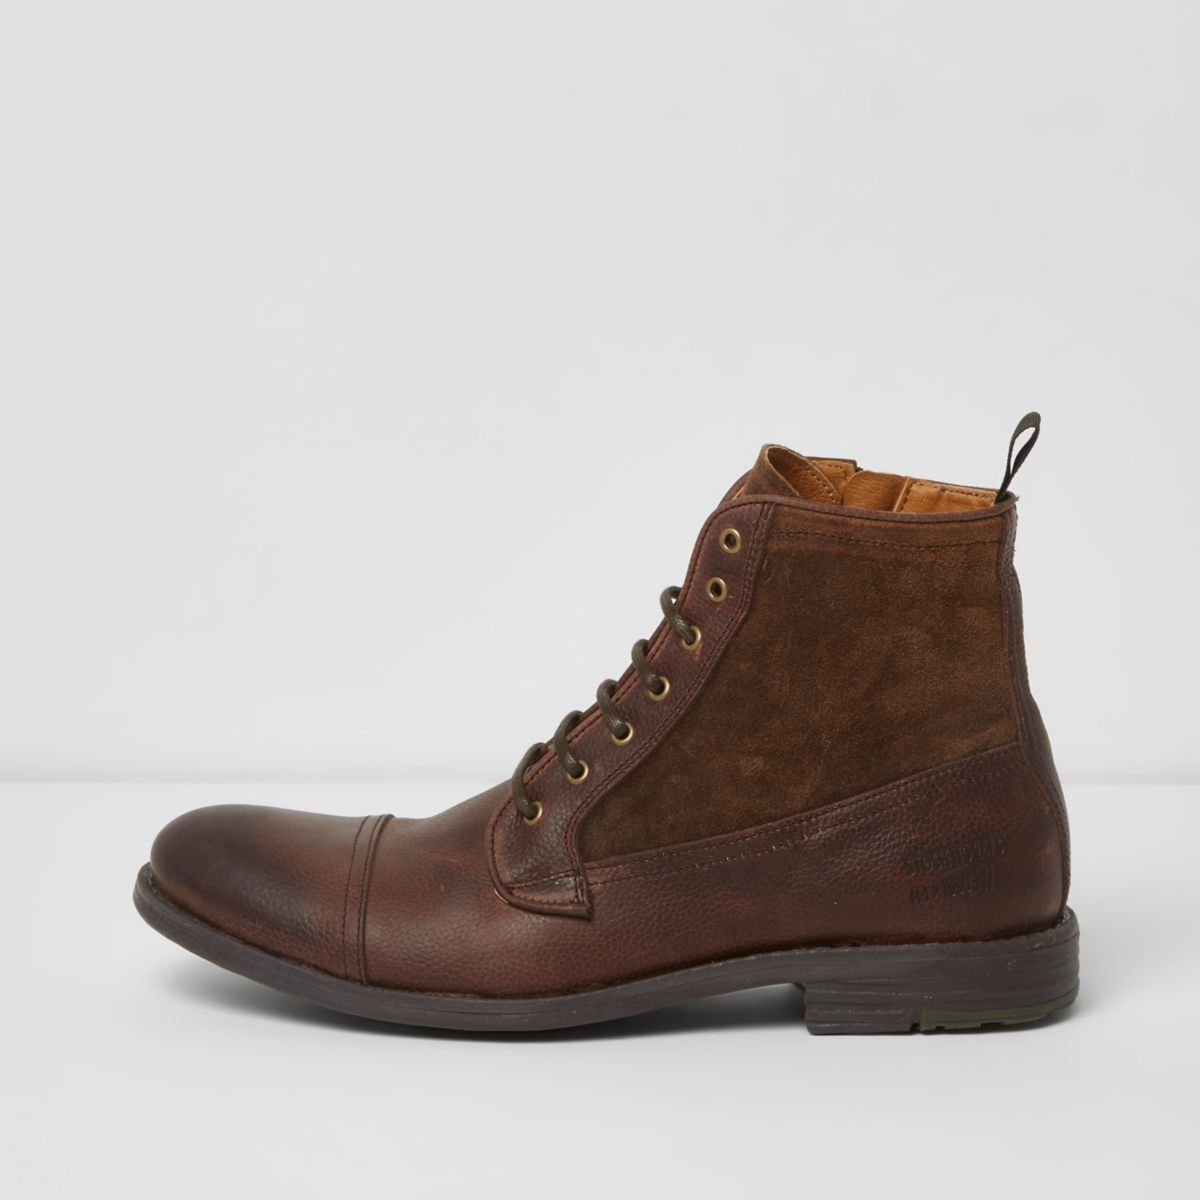 Find a selection of Lace-Up Boots for Women, Lace-Up Boots for Men, Lace-Up Boots for Juniors and more at Macy's. Macy's Presents: The Edit - A curated mix of fashion and inspiration Check It Out Free Shipping with $99 purchase + Free Store Pickup.